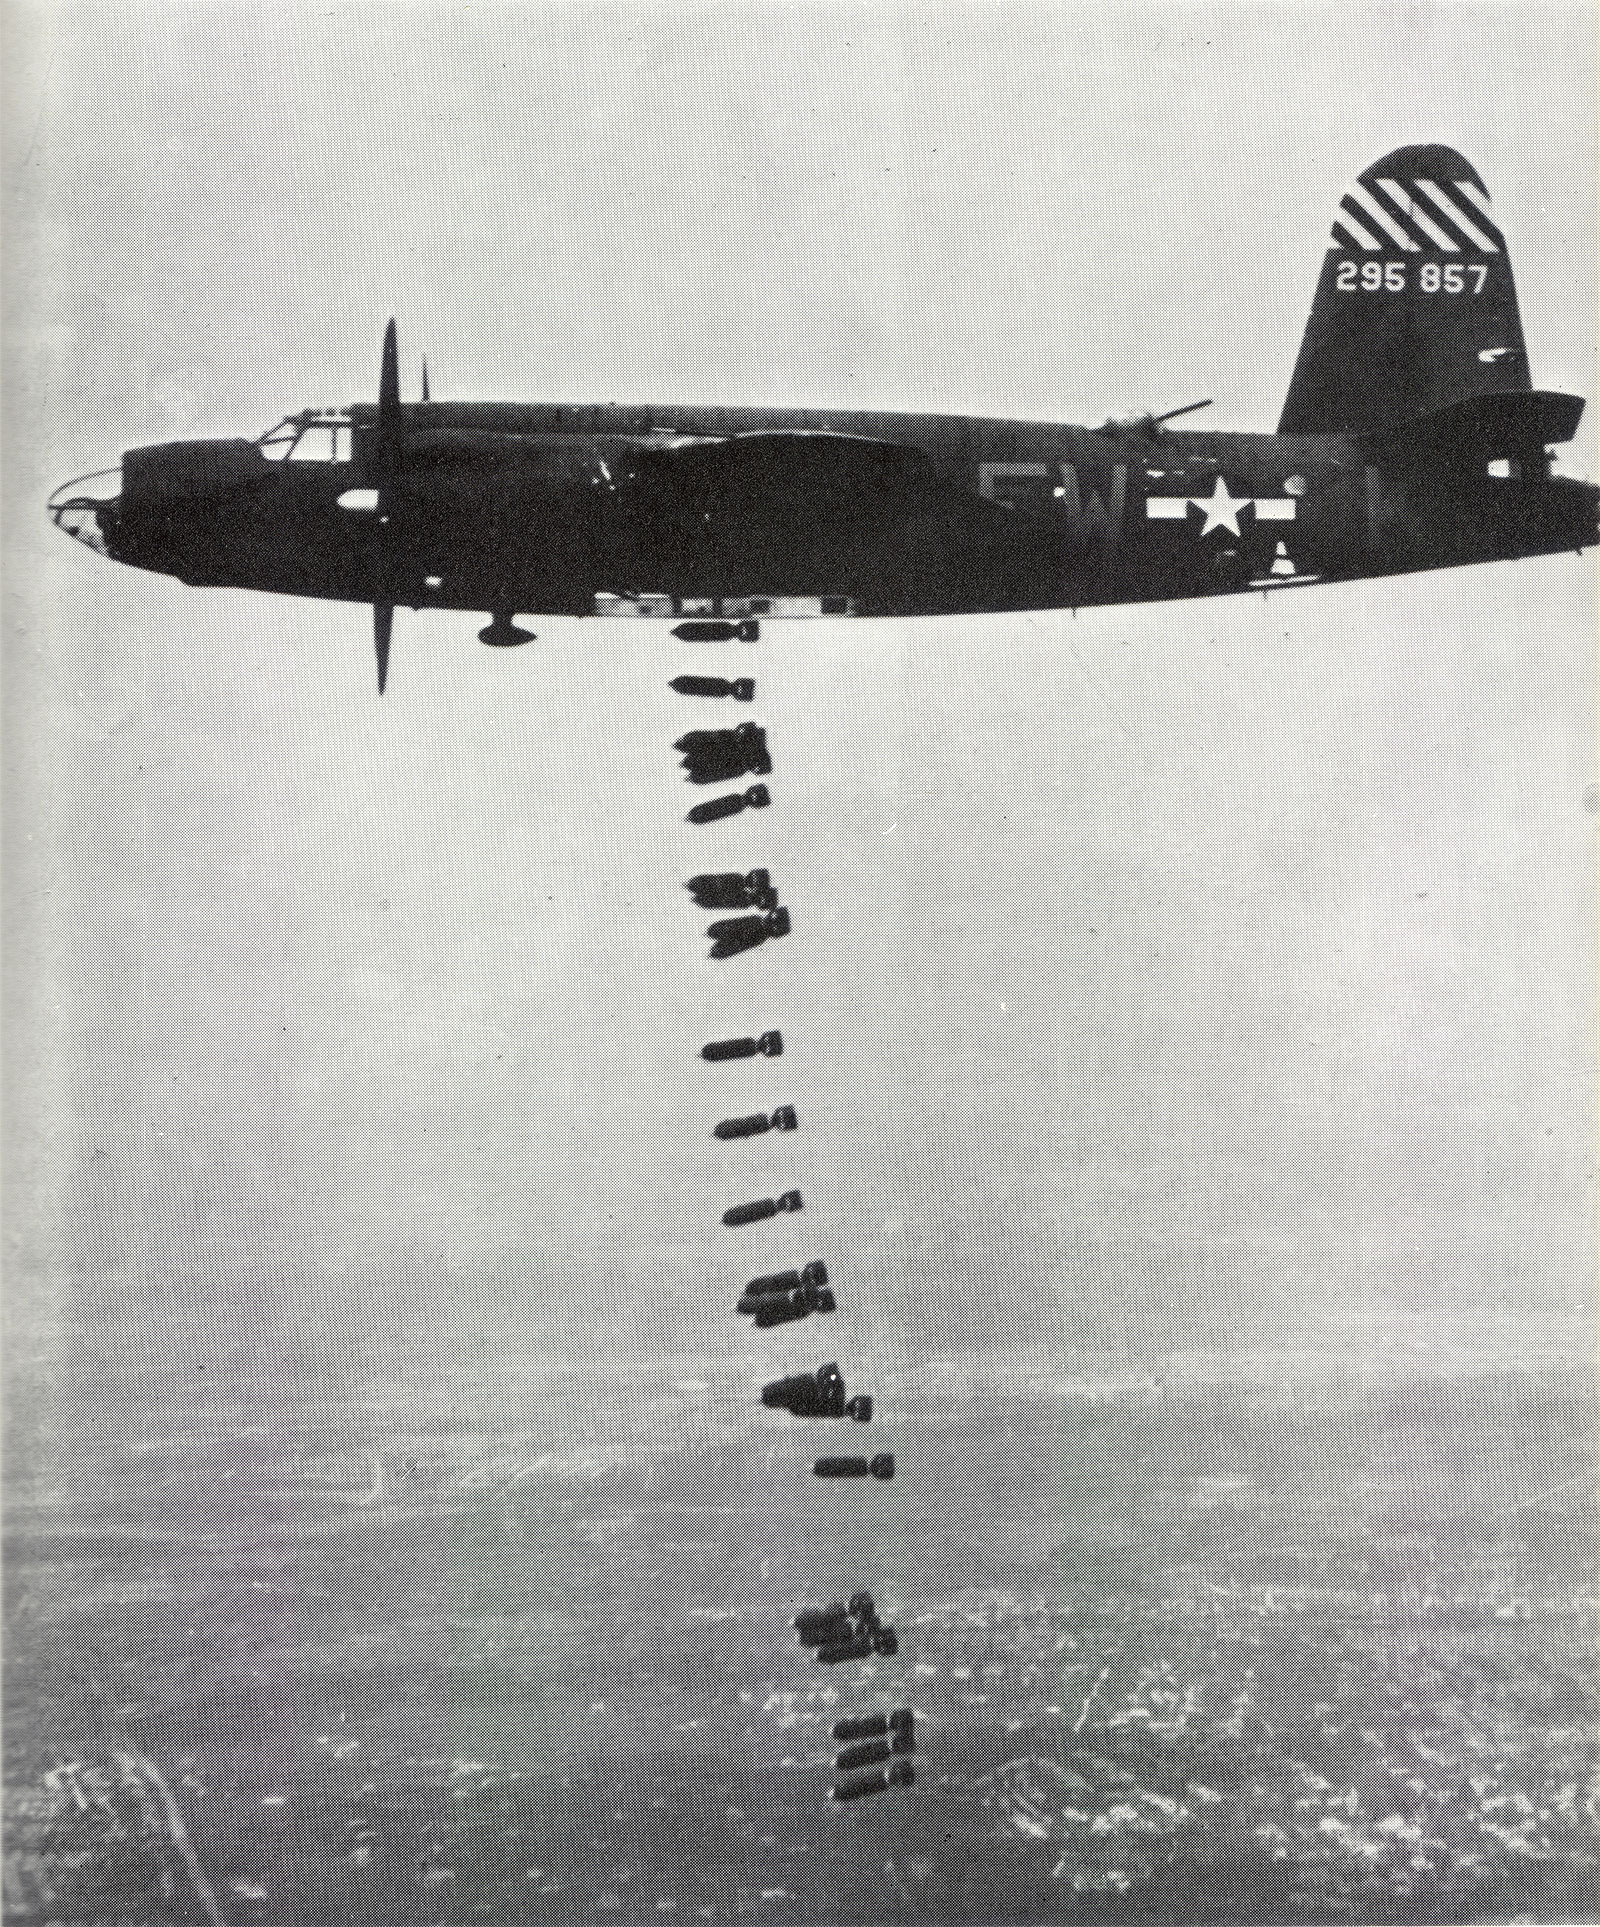 USAAF 42 95857 B 26B Marauder 387BG556BS FWK over the drop zone 02